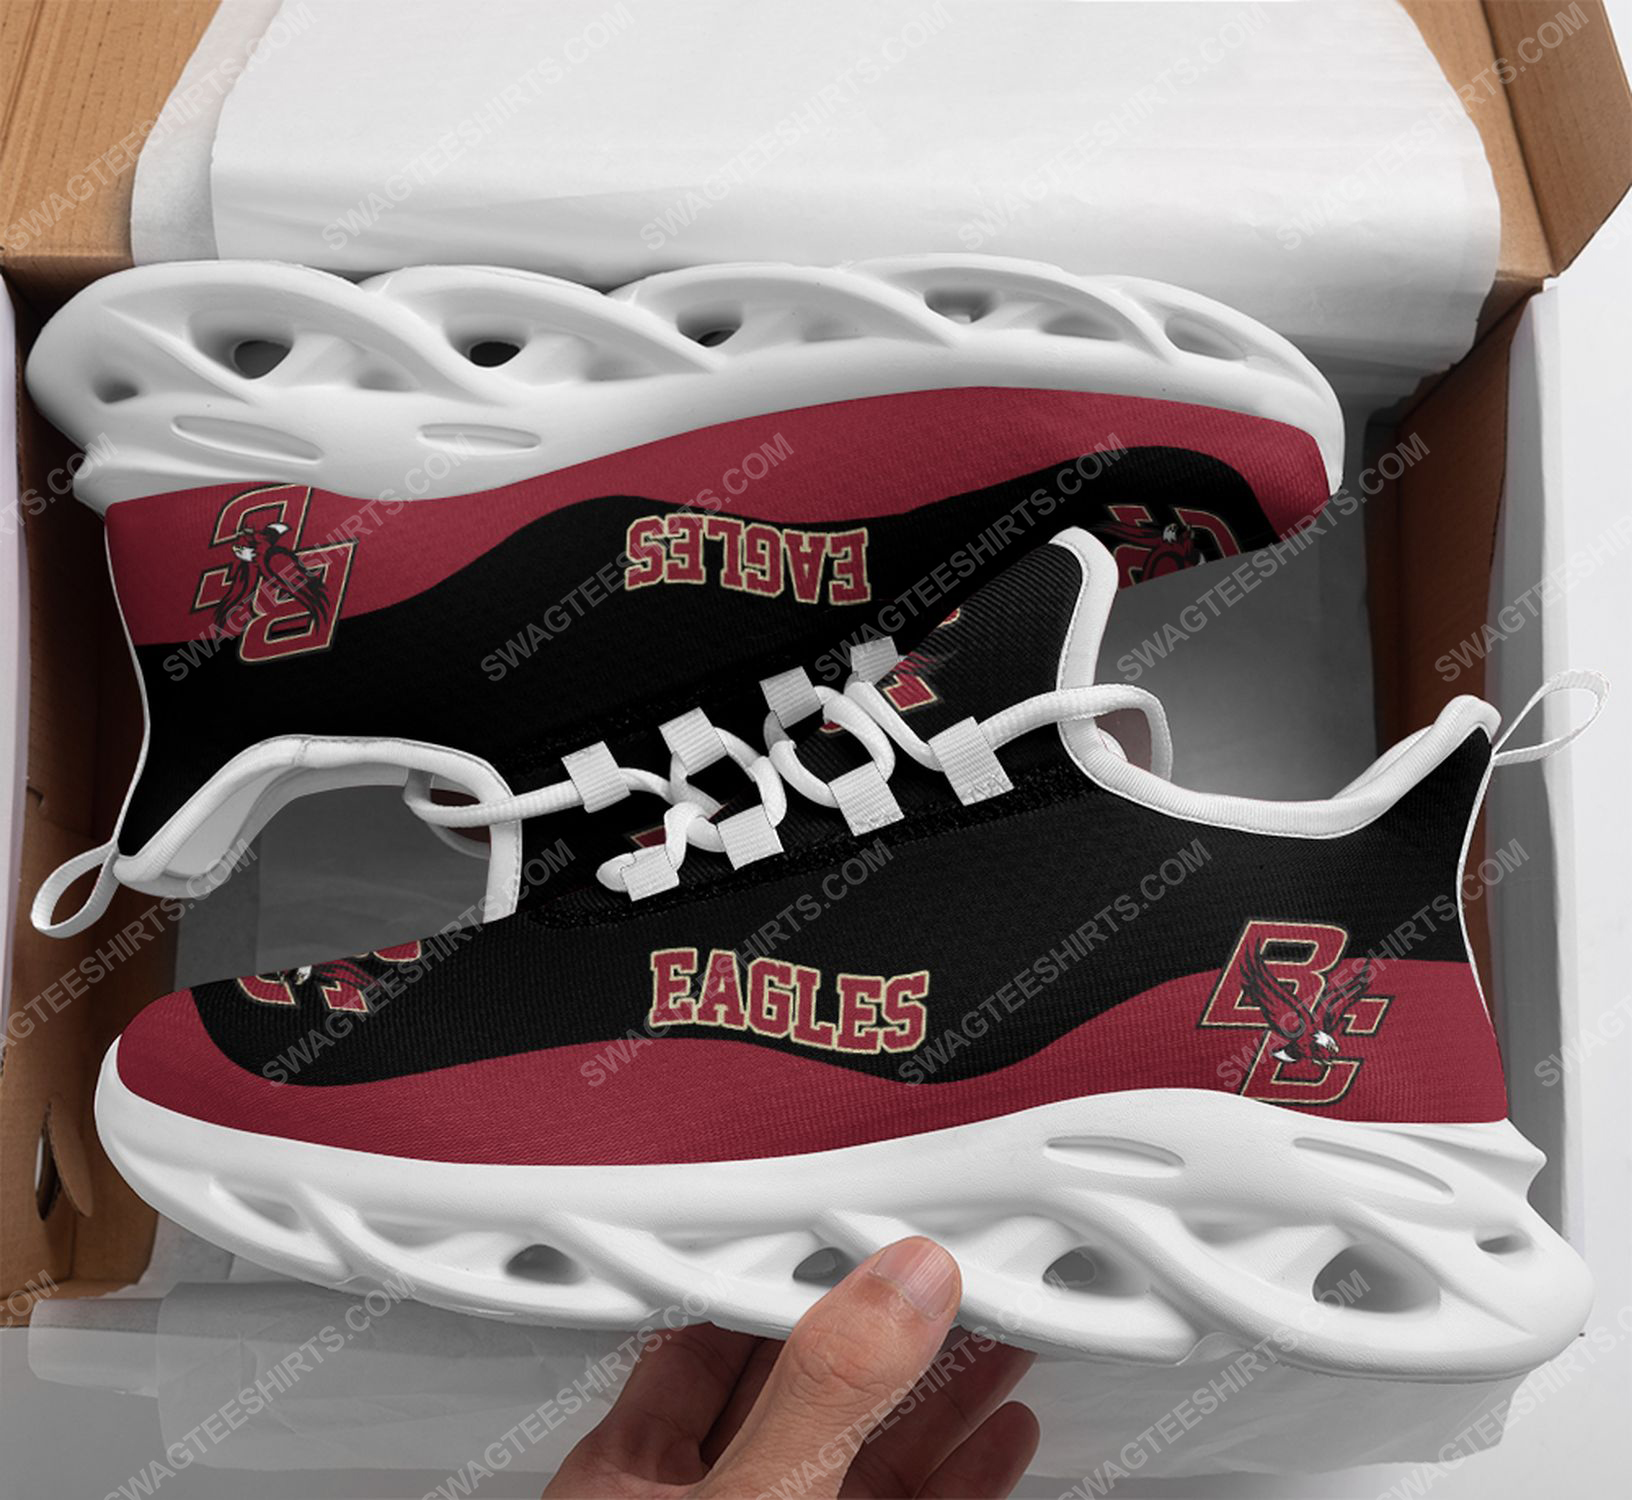 The boston college eagles football team max soul shoes 1